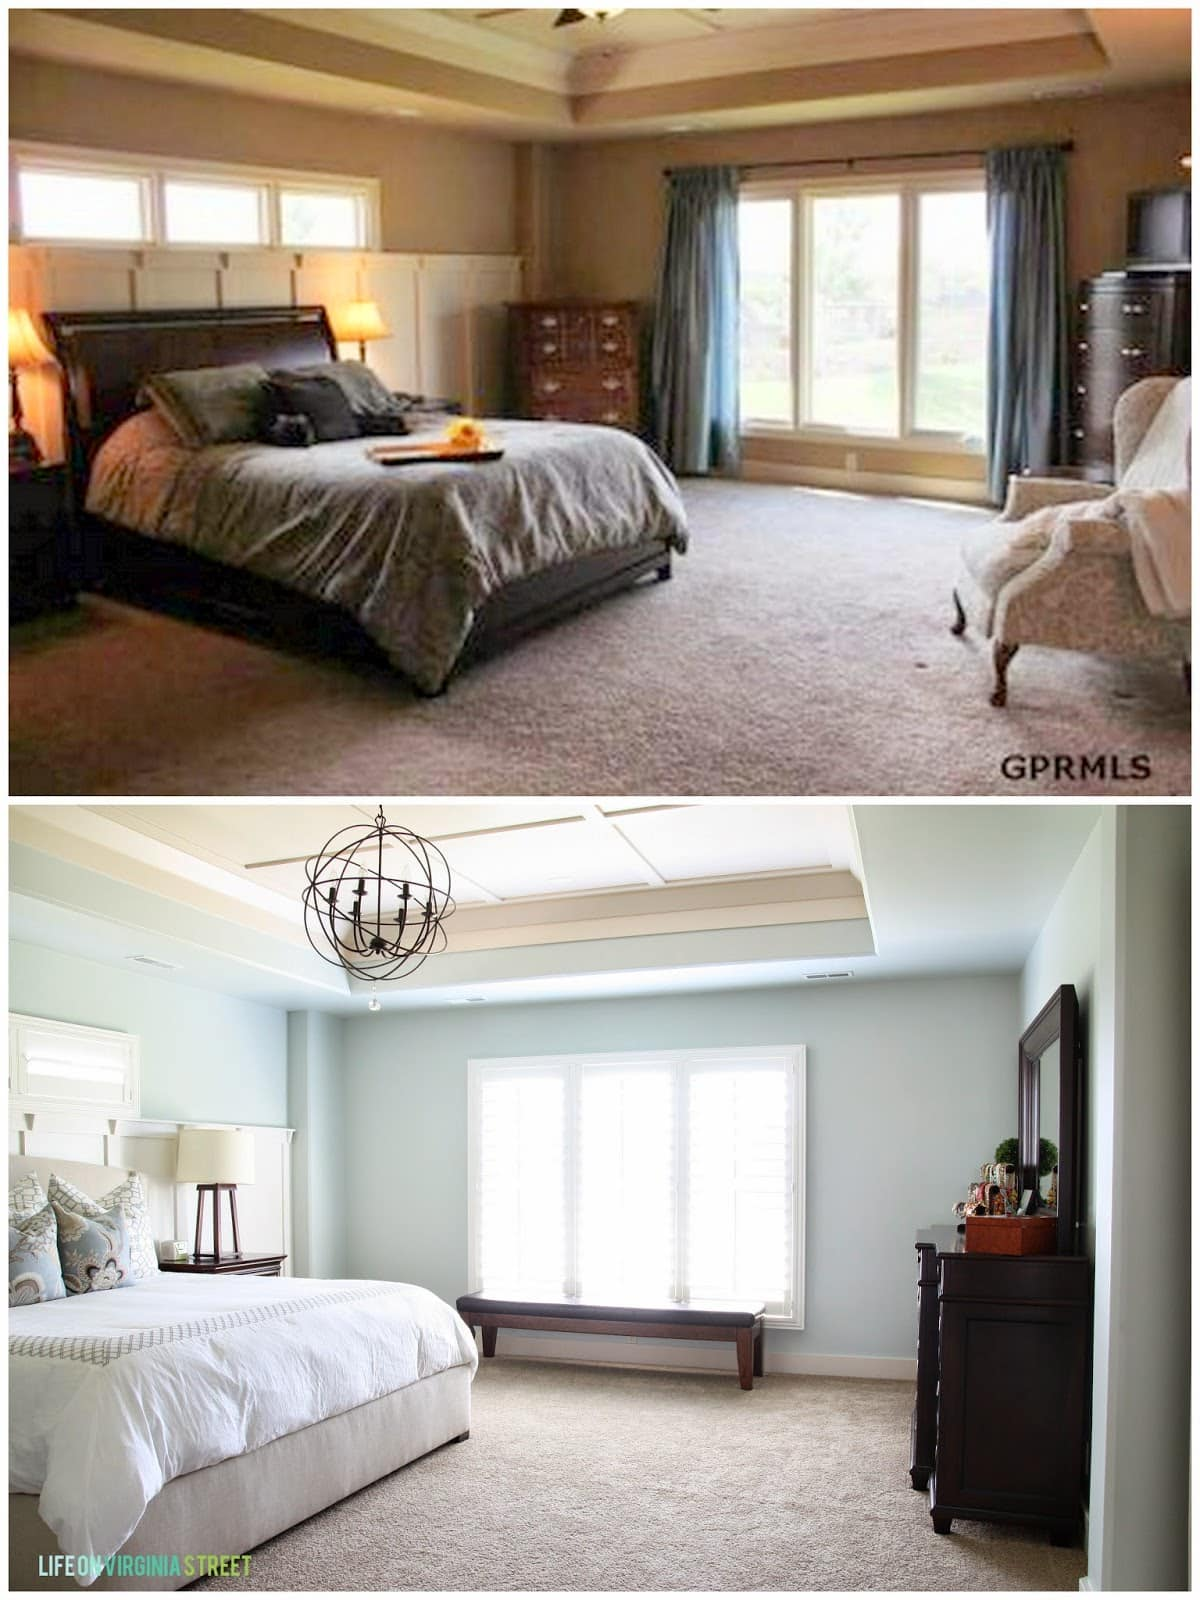 A gorgeous master bedroom transformation using Sherwin Williams Sea Salt paint on the walls. Such a soothing and relaxing color for a bedroom or bathroom! I also love the orb chandelier, white bedding, and Schumacher pillows on the bed.